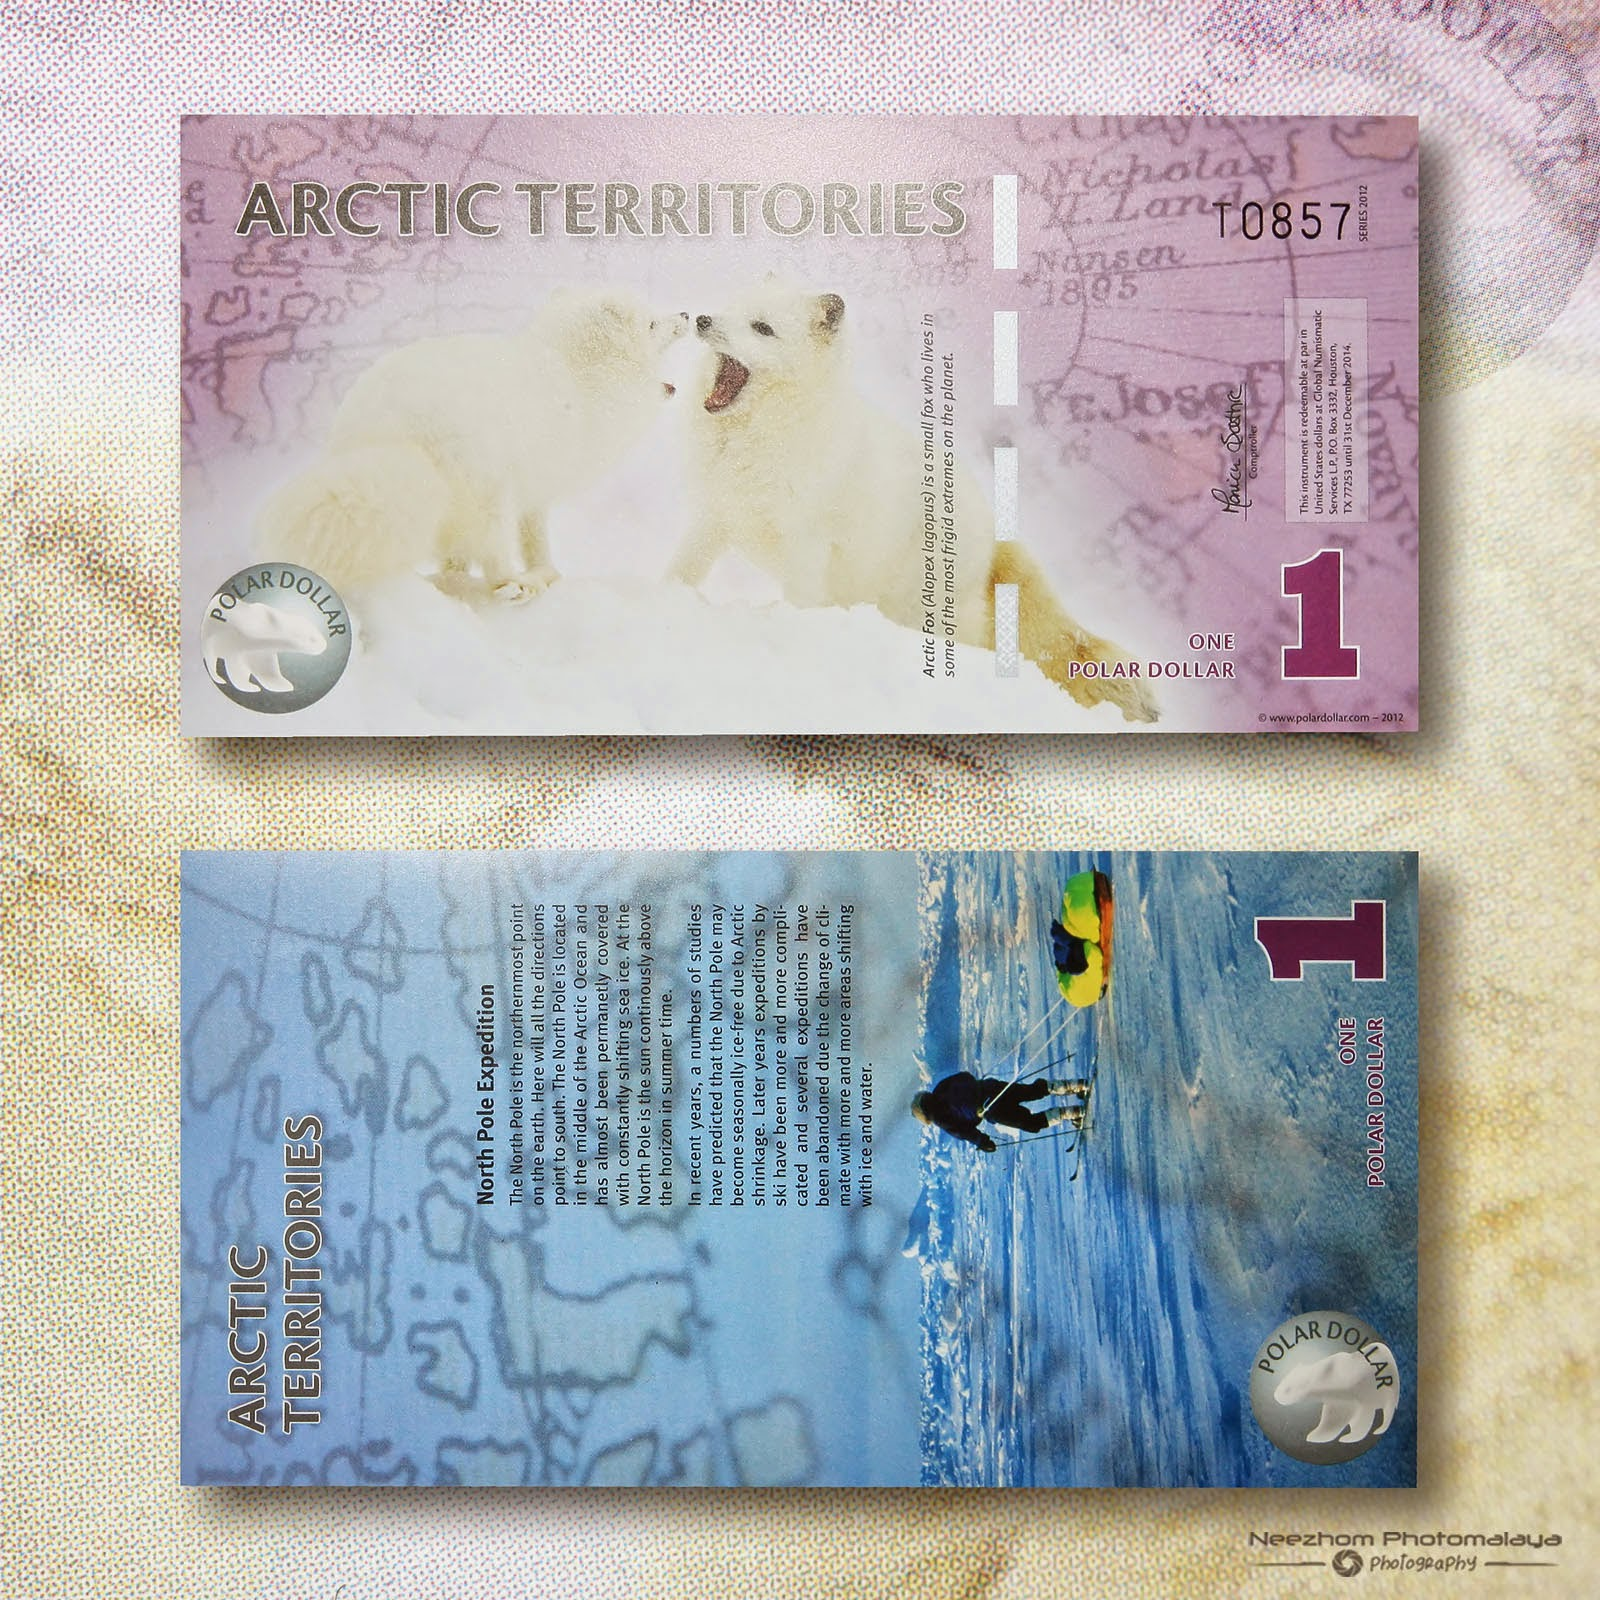 One Dollar 2012 Arctic polymer Banknote